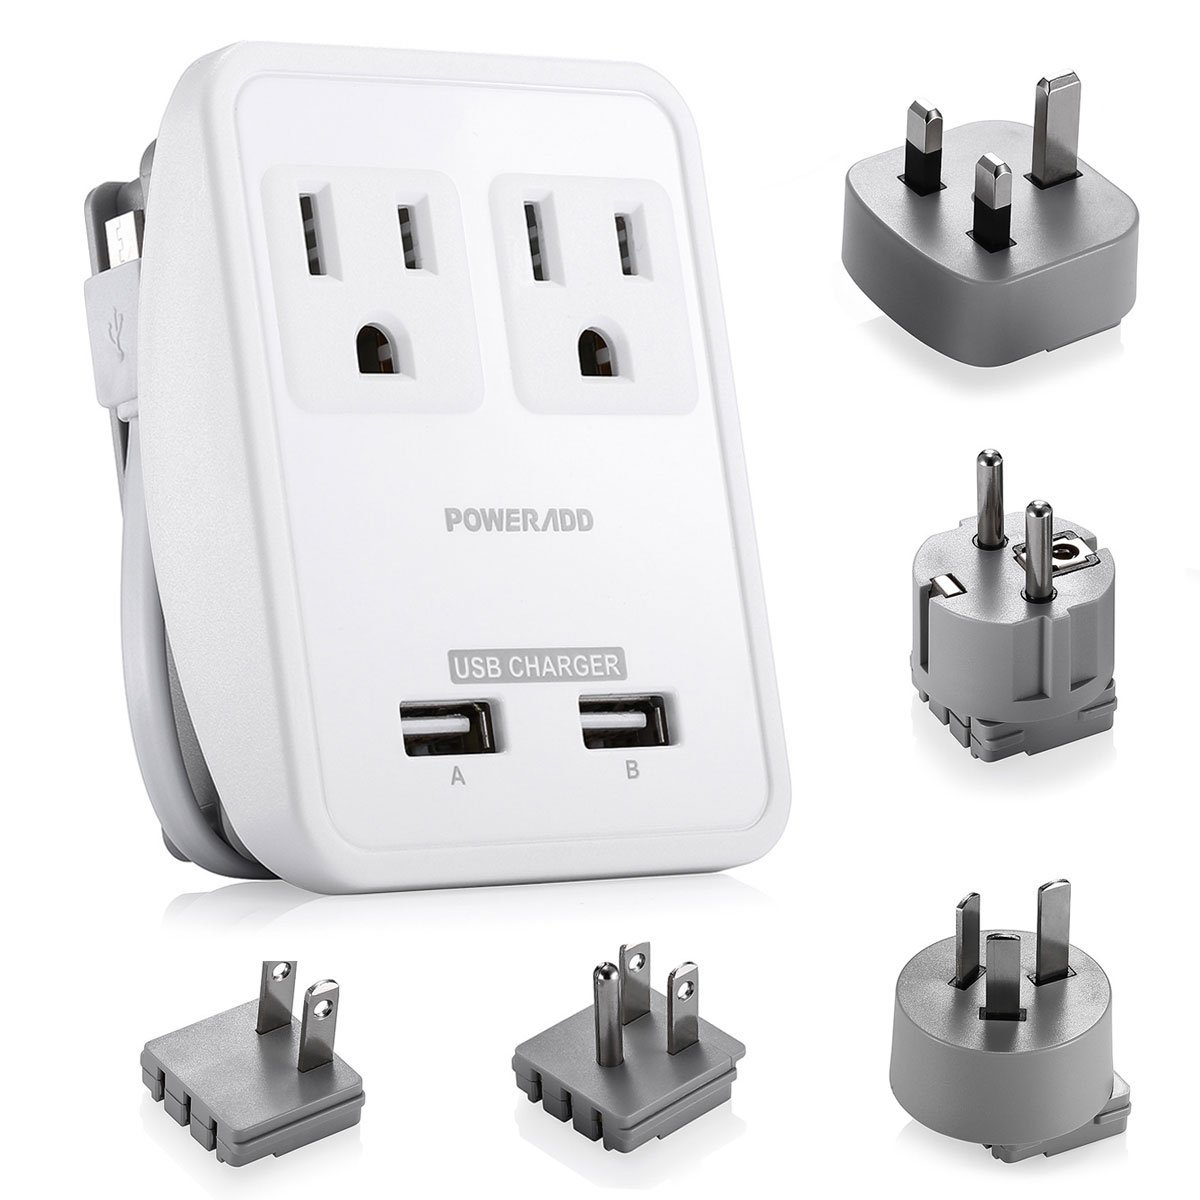 Poweradd 2-Outlet International Travel Plug Adapter with Wrapped Cord Design